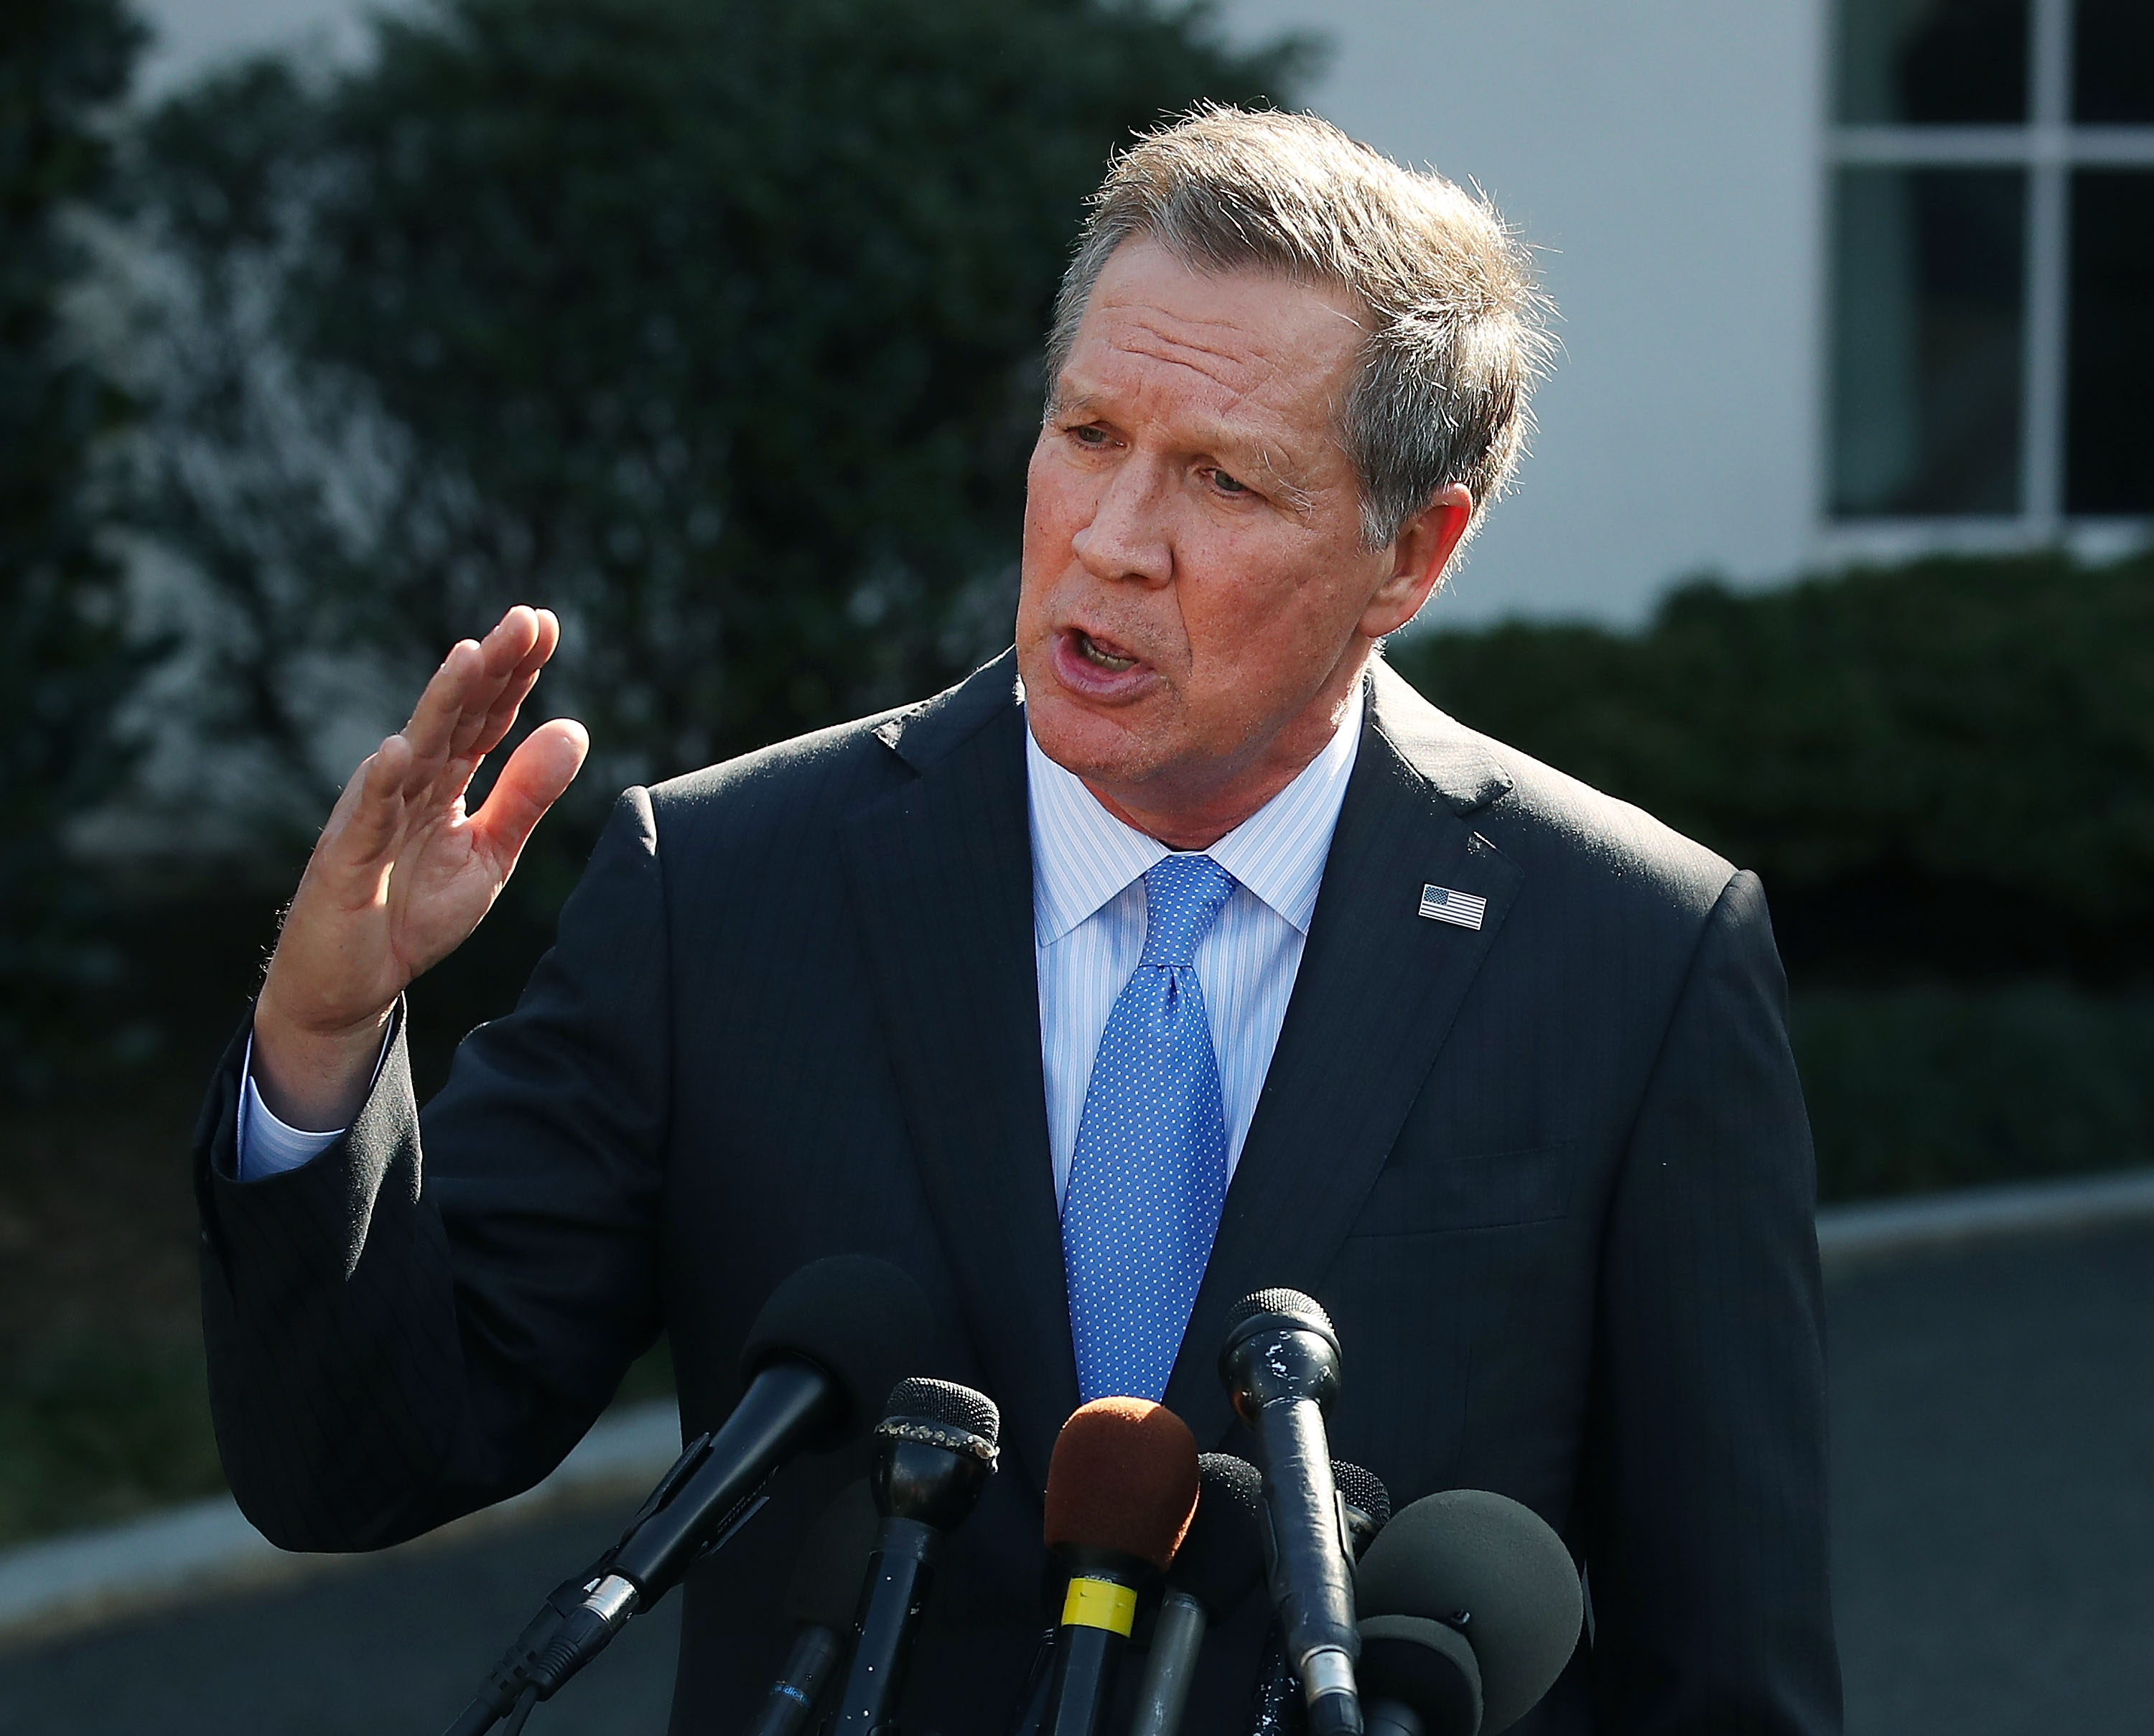 Ohio Governor John Kasich speaks to reporters after a closed meeting with U.S. President Donald Trump, on Feb. 24, 2017 in Washington, D.C.